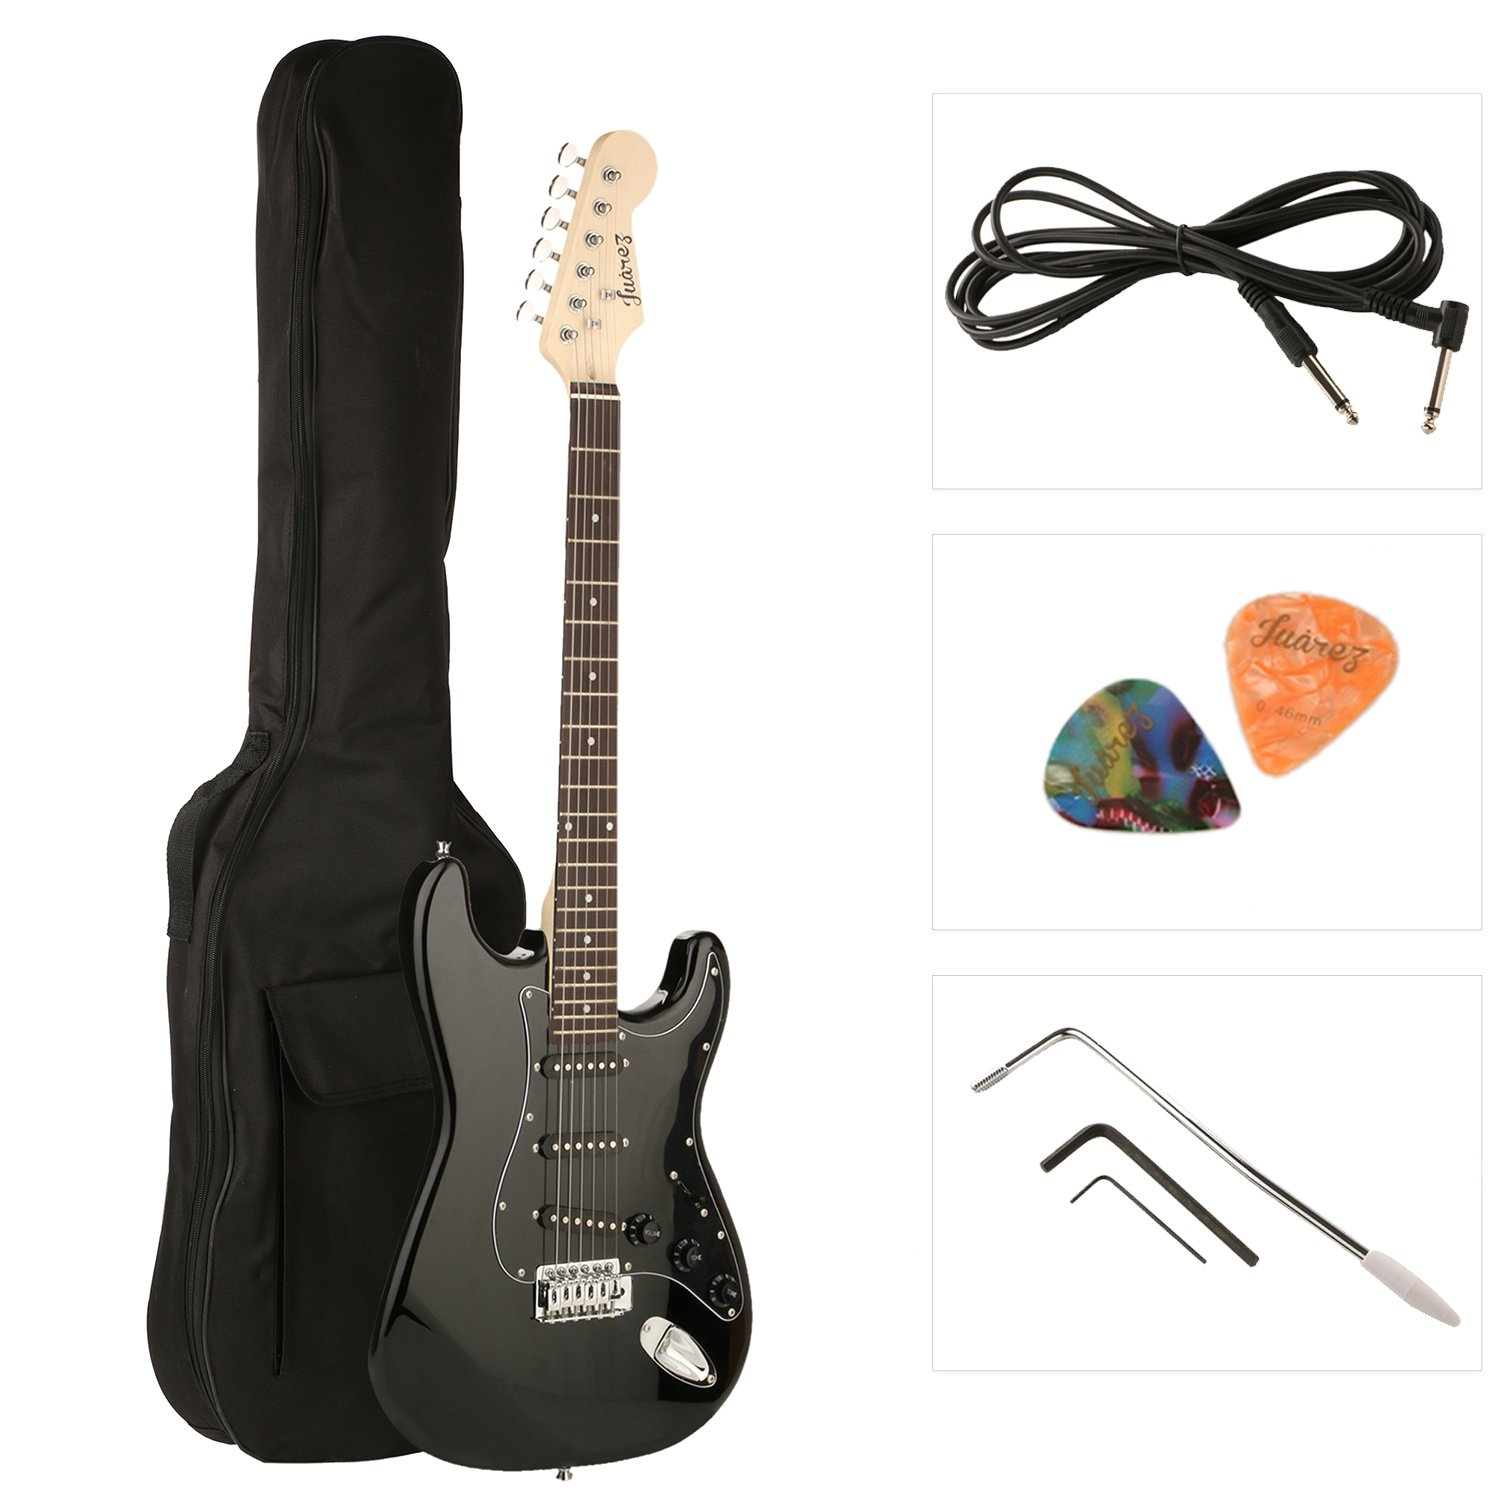 Electric Guitars Online Buy In India Best Affinity 8 Furnace Wiring Diagram S Bestsellers